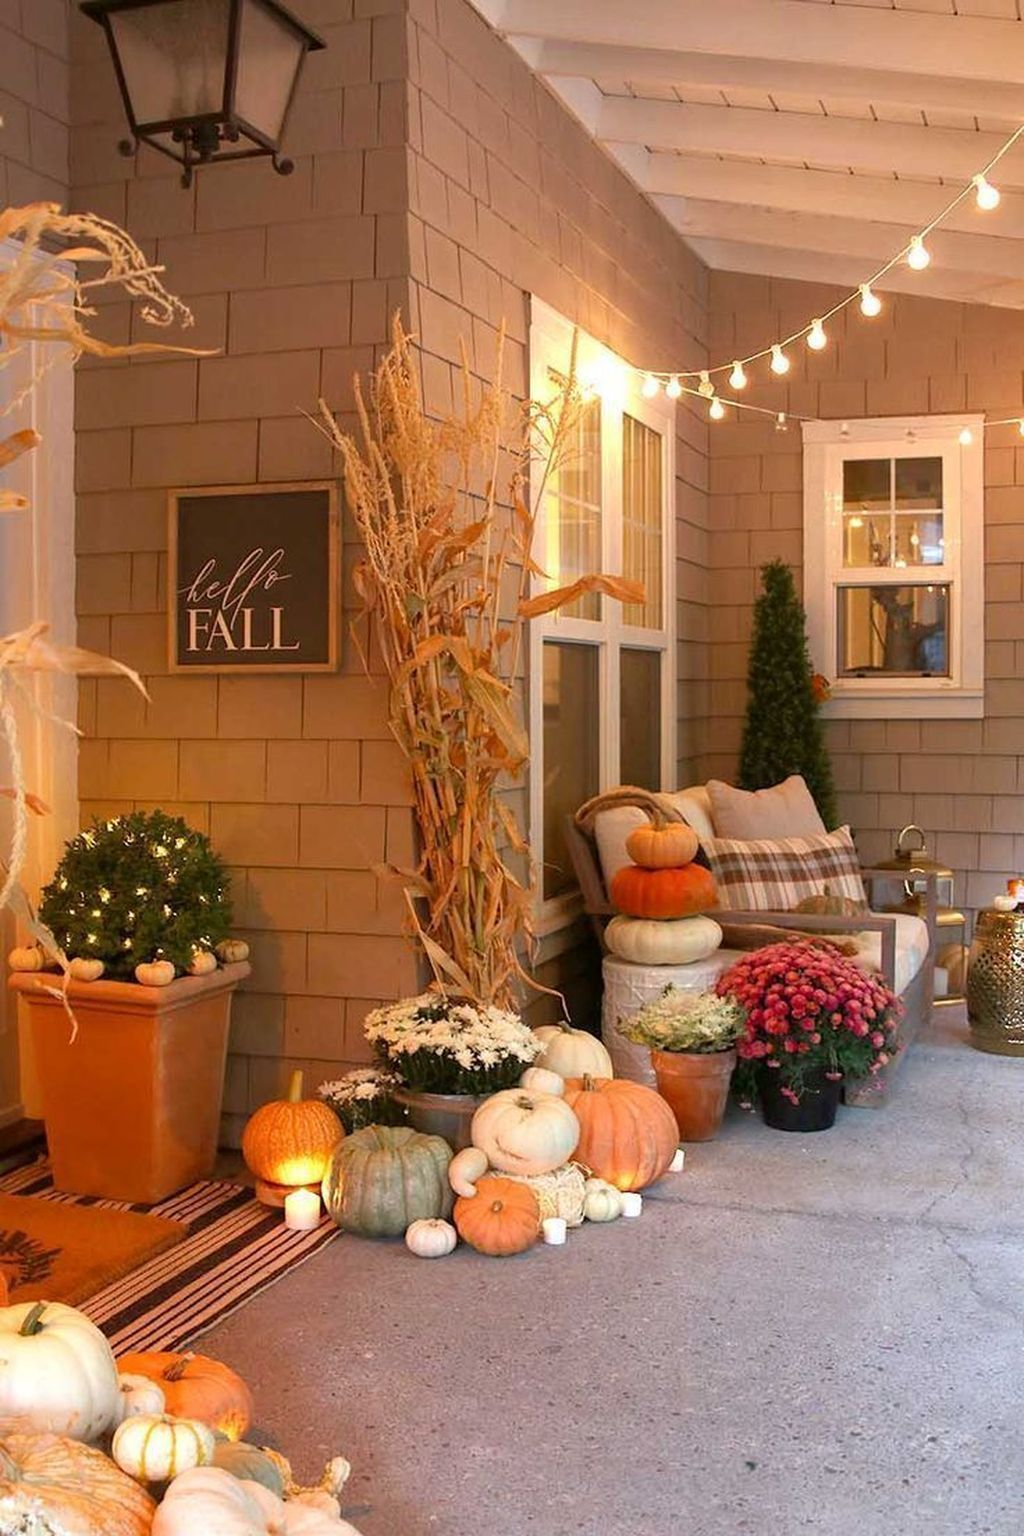 Inspiring Outdoor Fall Decoration Ideas Best For This Season #falldecorideas